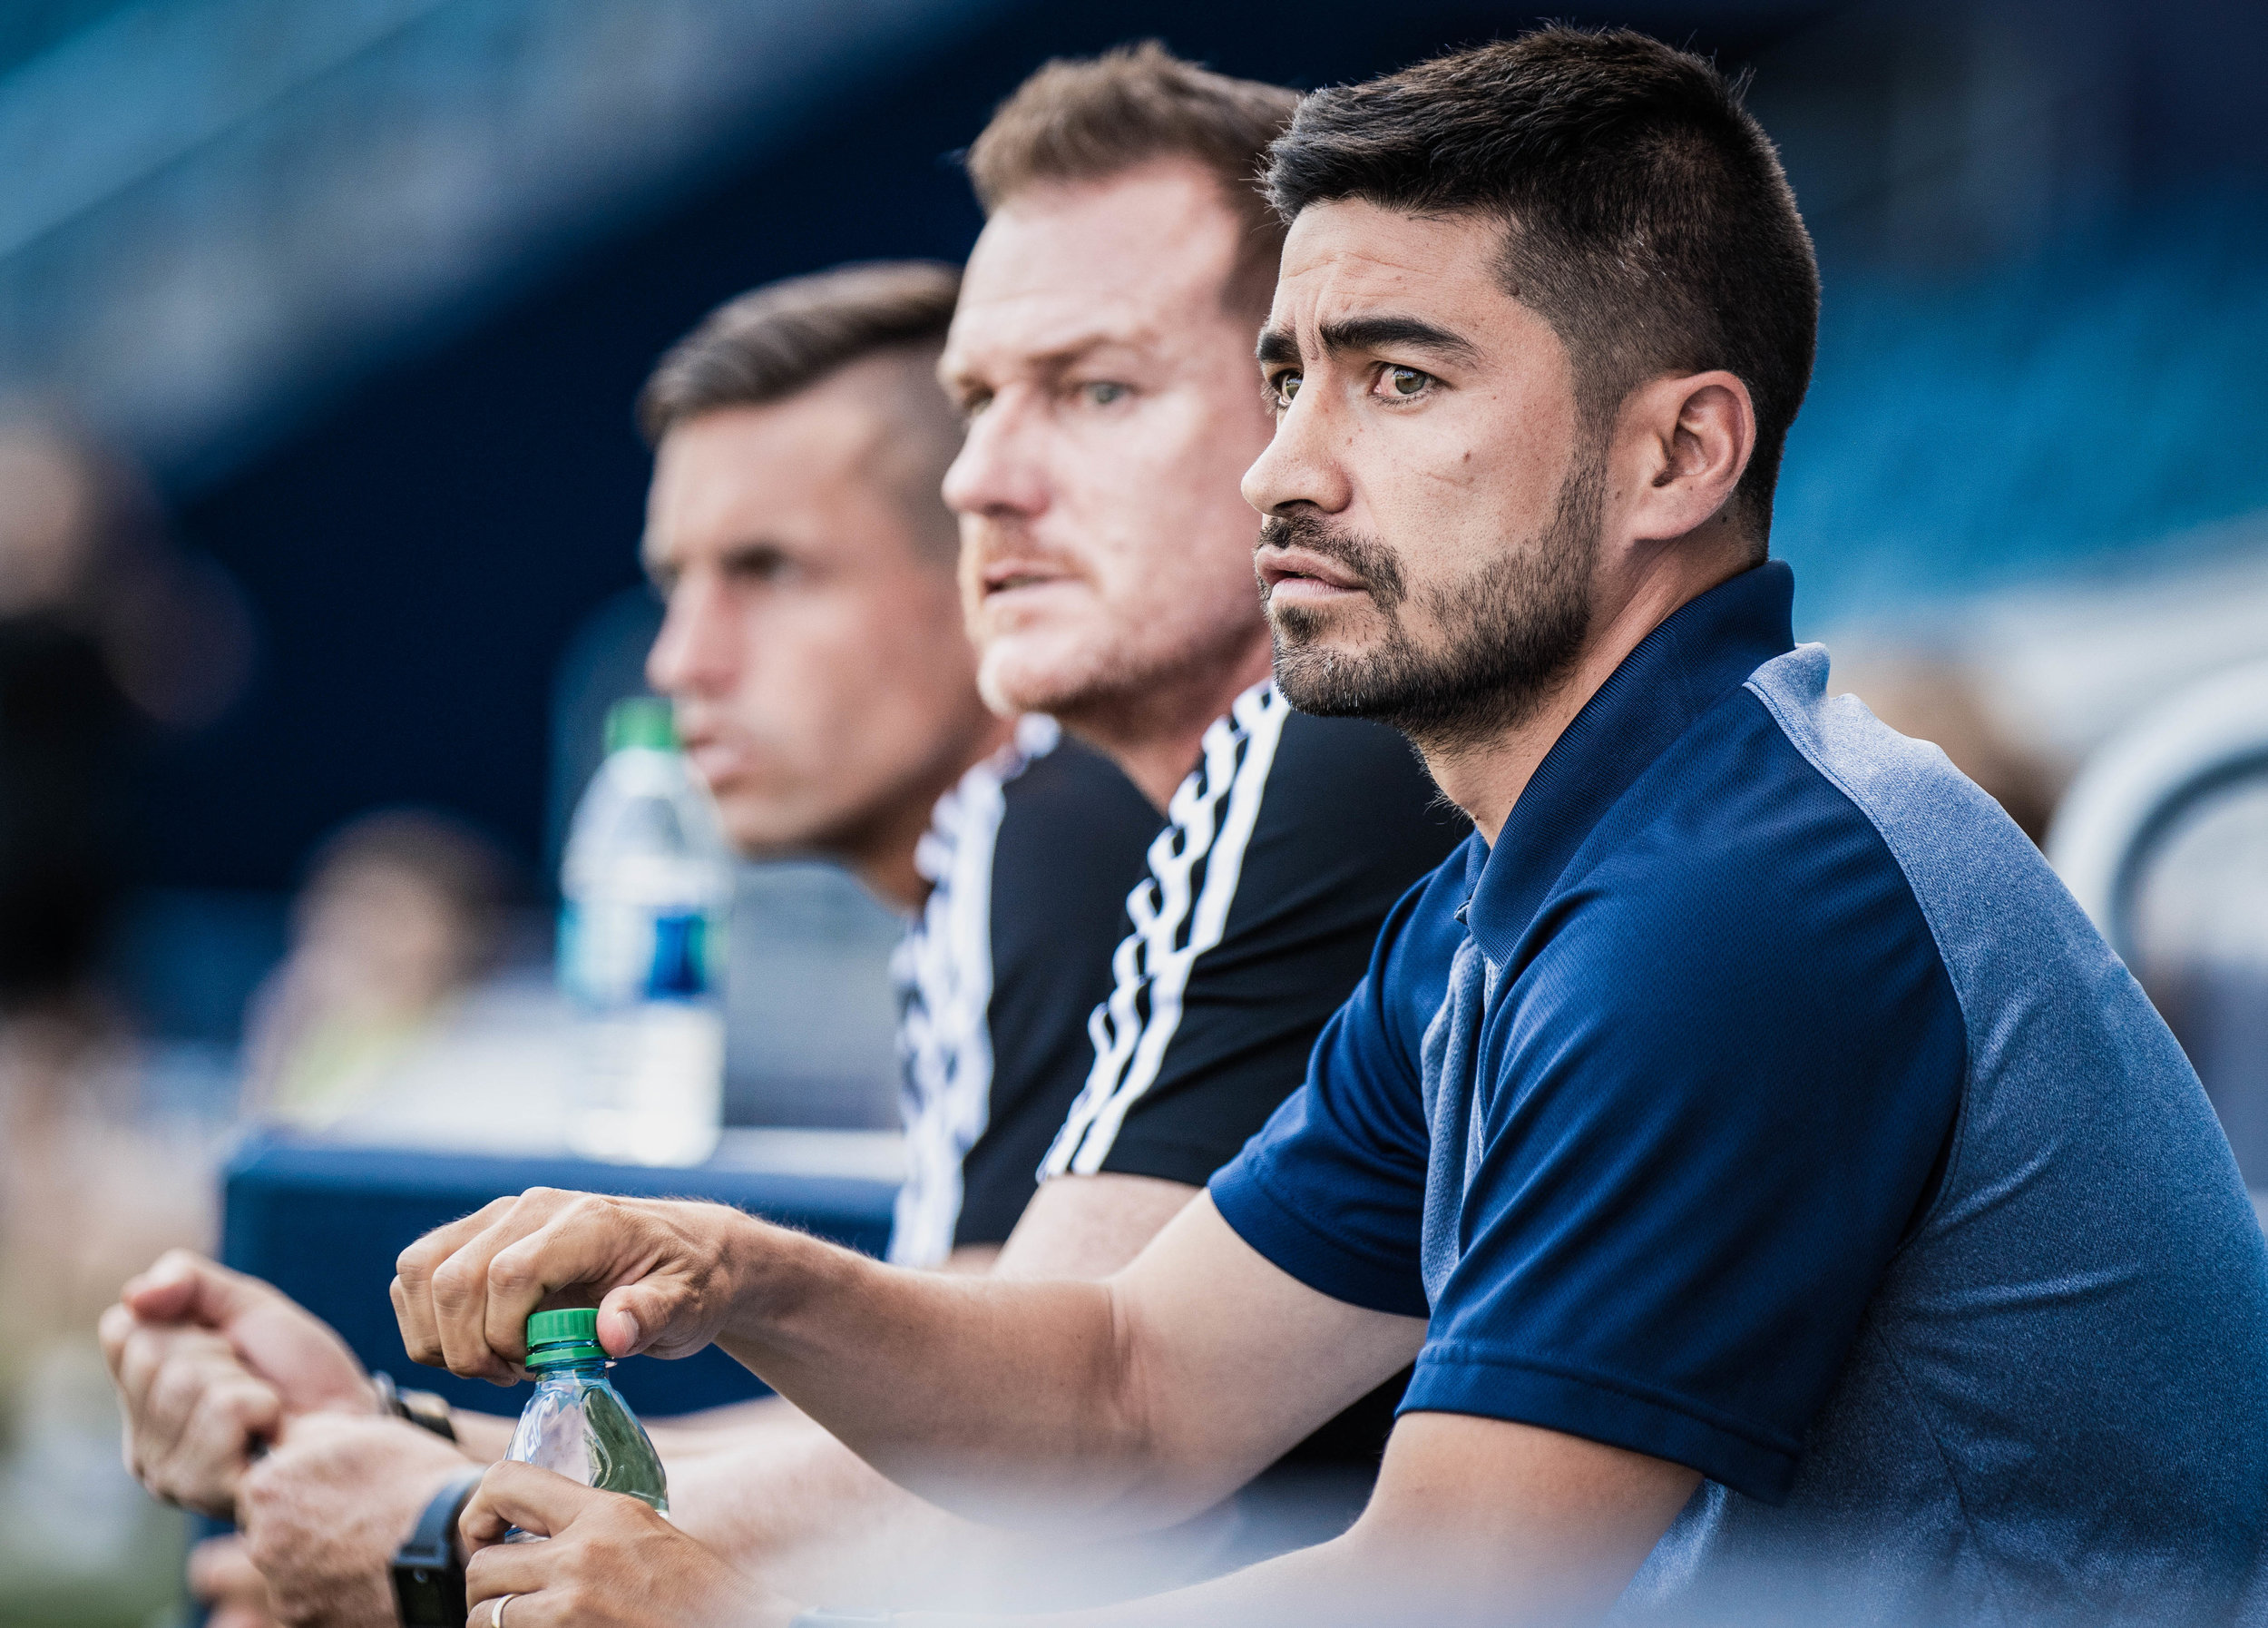 Swope Park Rangers head coach Paulo Nagamura watches on during the Swope Park Rangers vs. Charlotte Independence match on Saturday, June 8, 2019 at Children's Mercy Park, in Kansas City, Kansas. The Rangers drew the Independence 0-0. | Photo by: Noah Riffe